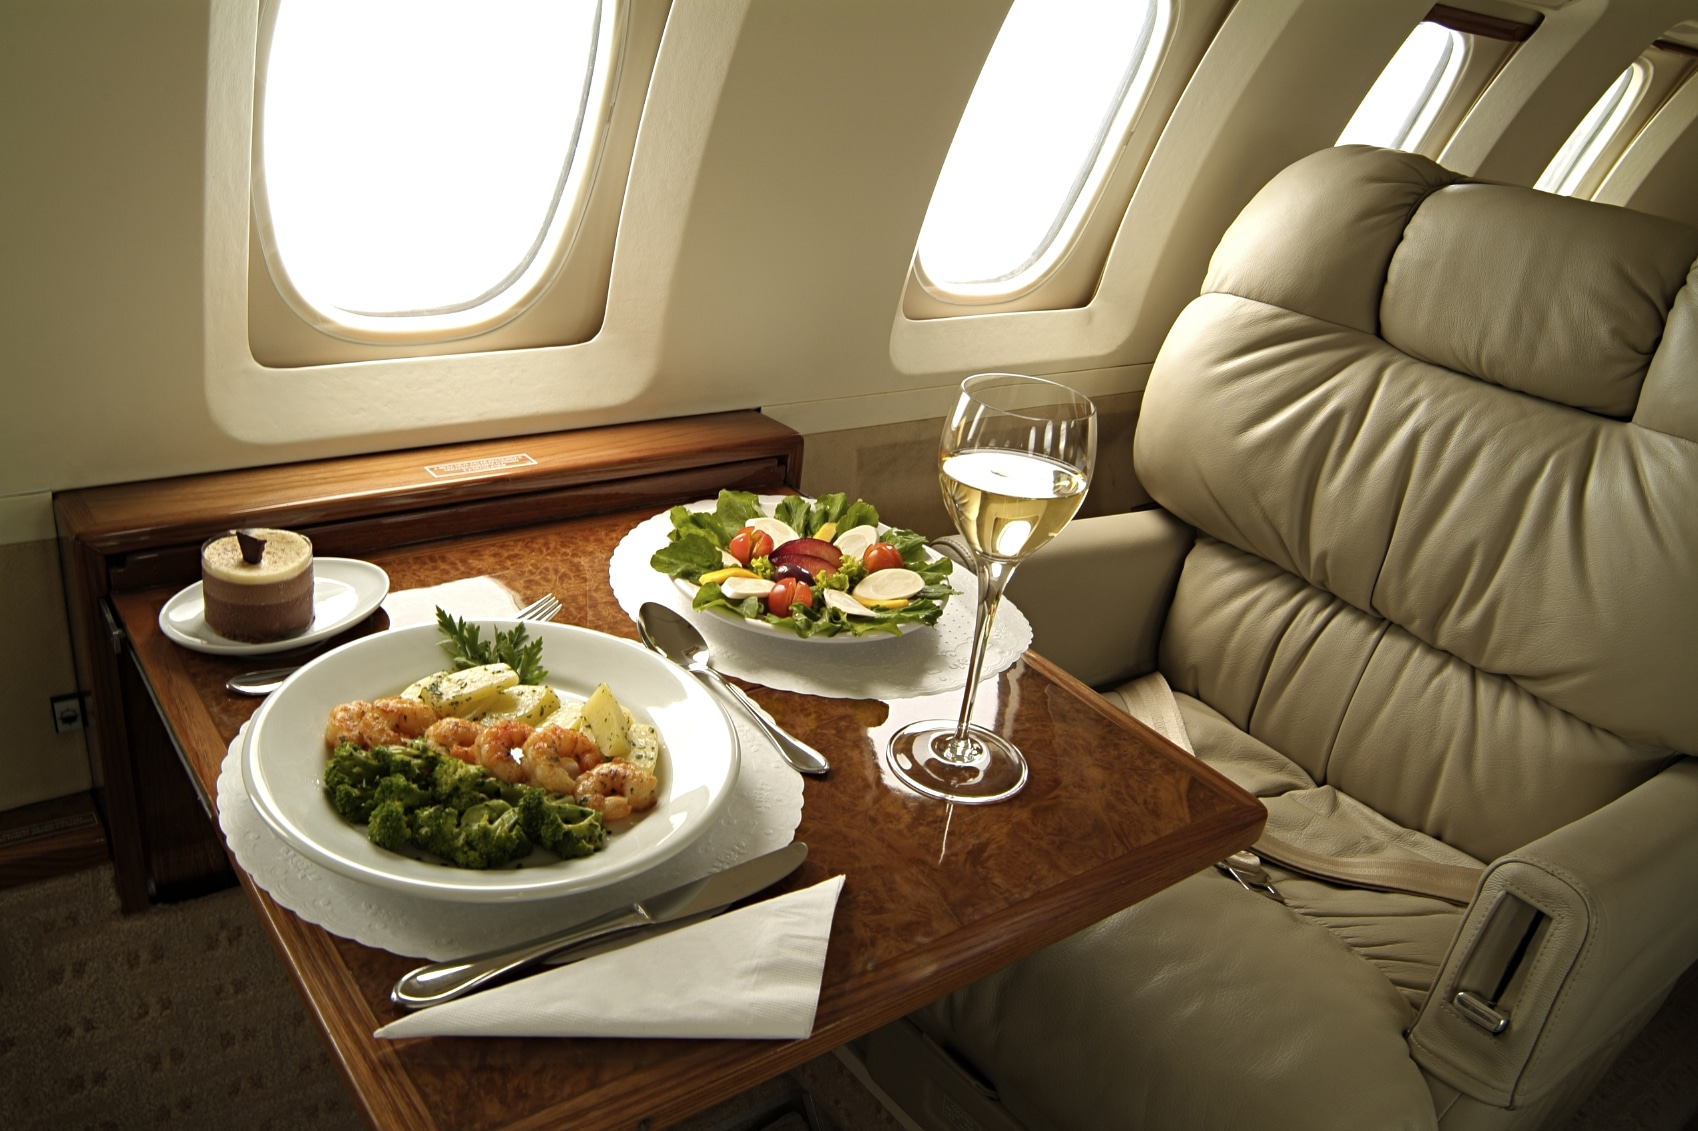 How to buy discount business class tickets and discount first class tickets.